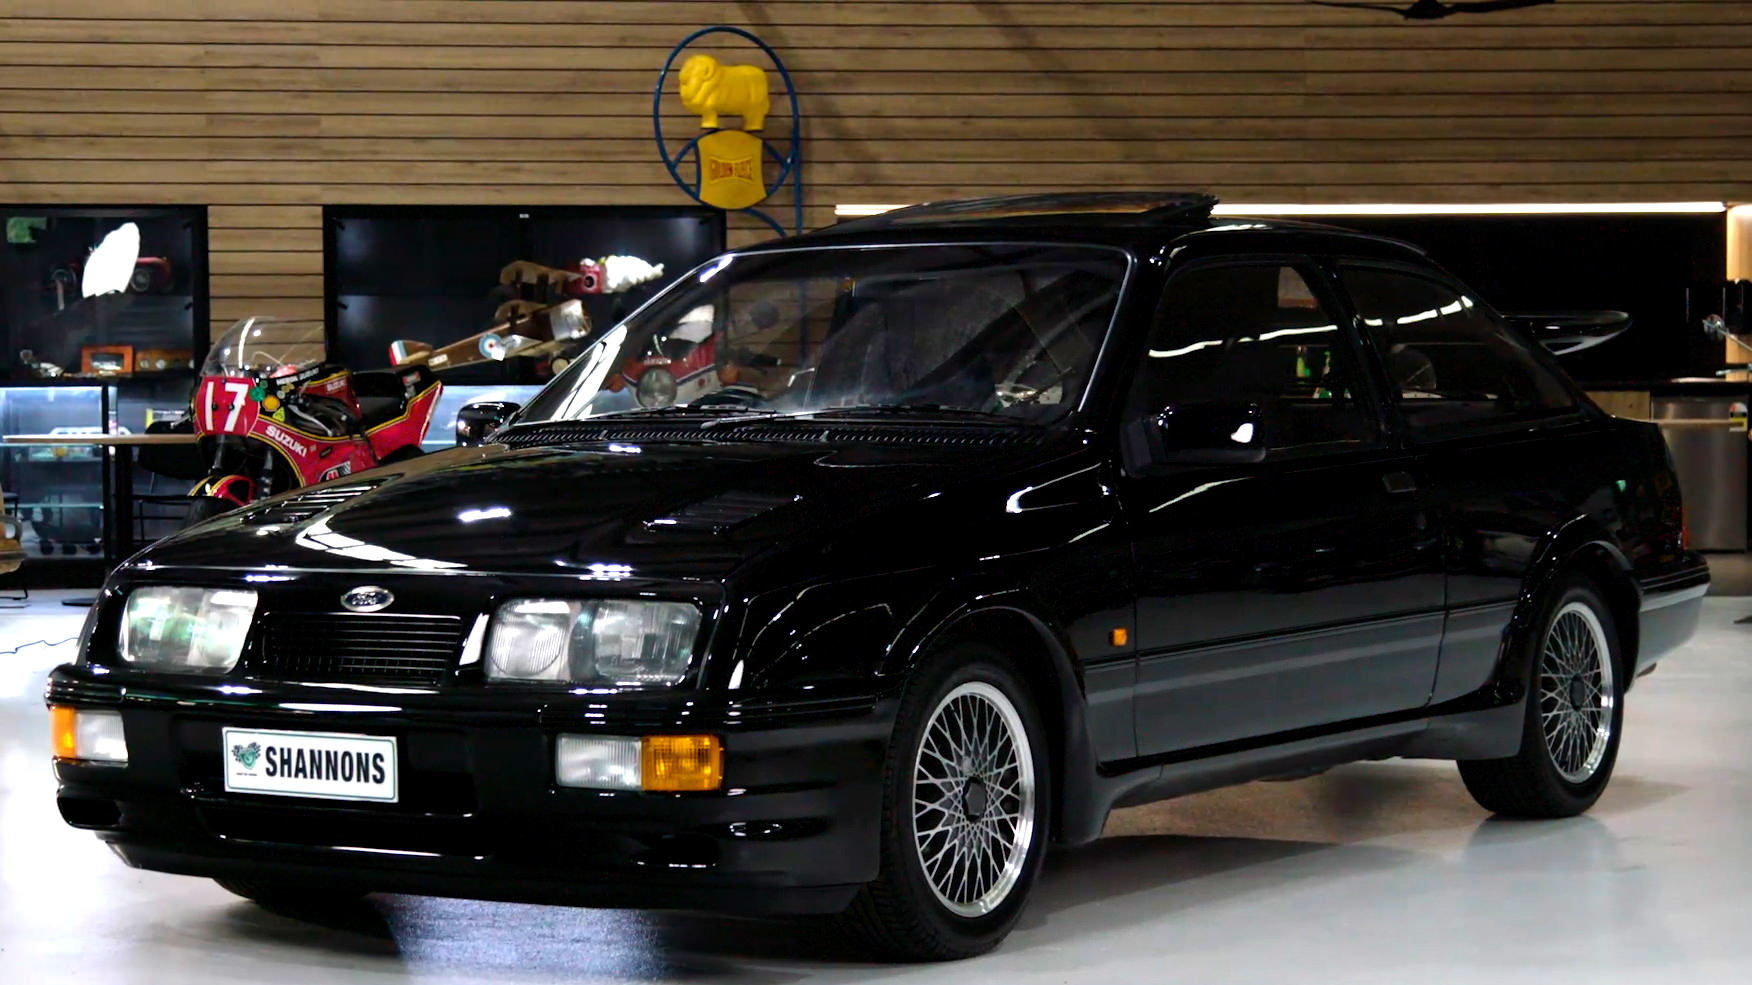 1986 Ford Sierra RS Cosworth Hatchback - 2021 Shannons Summer Timed Online Auction